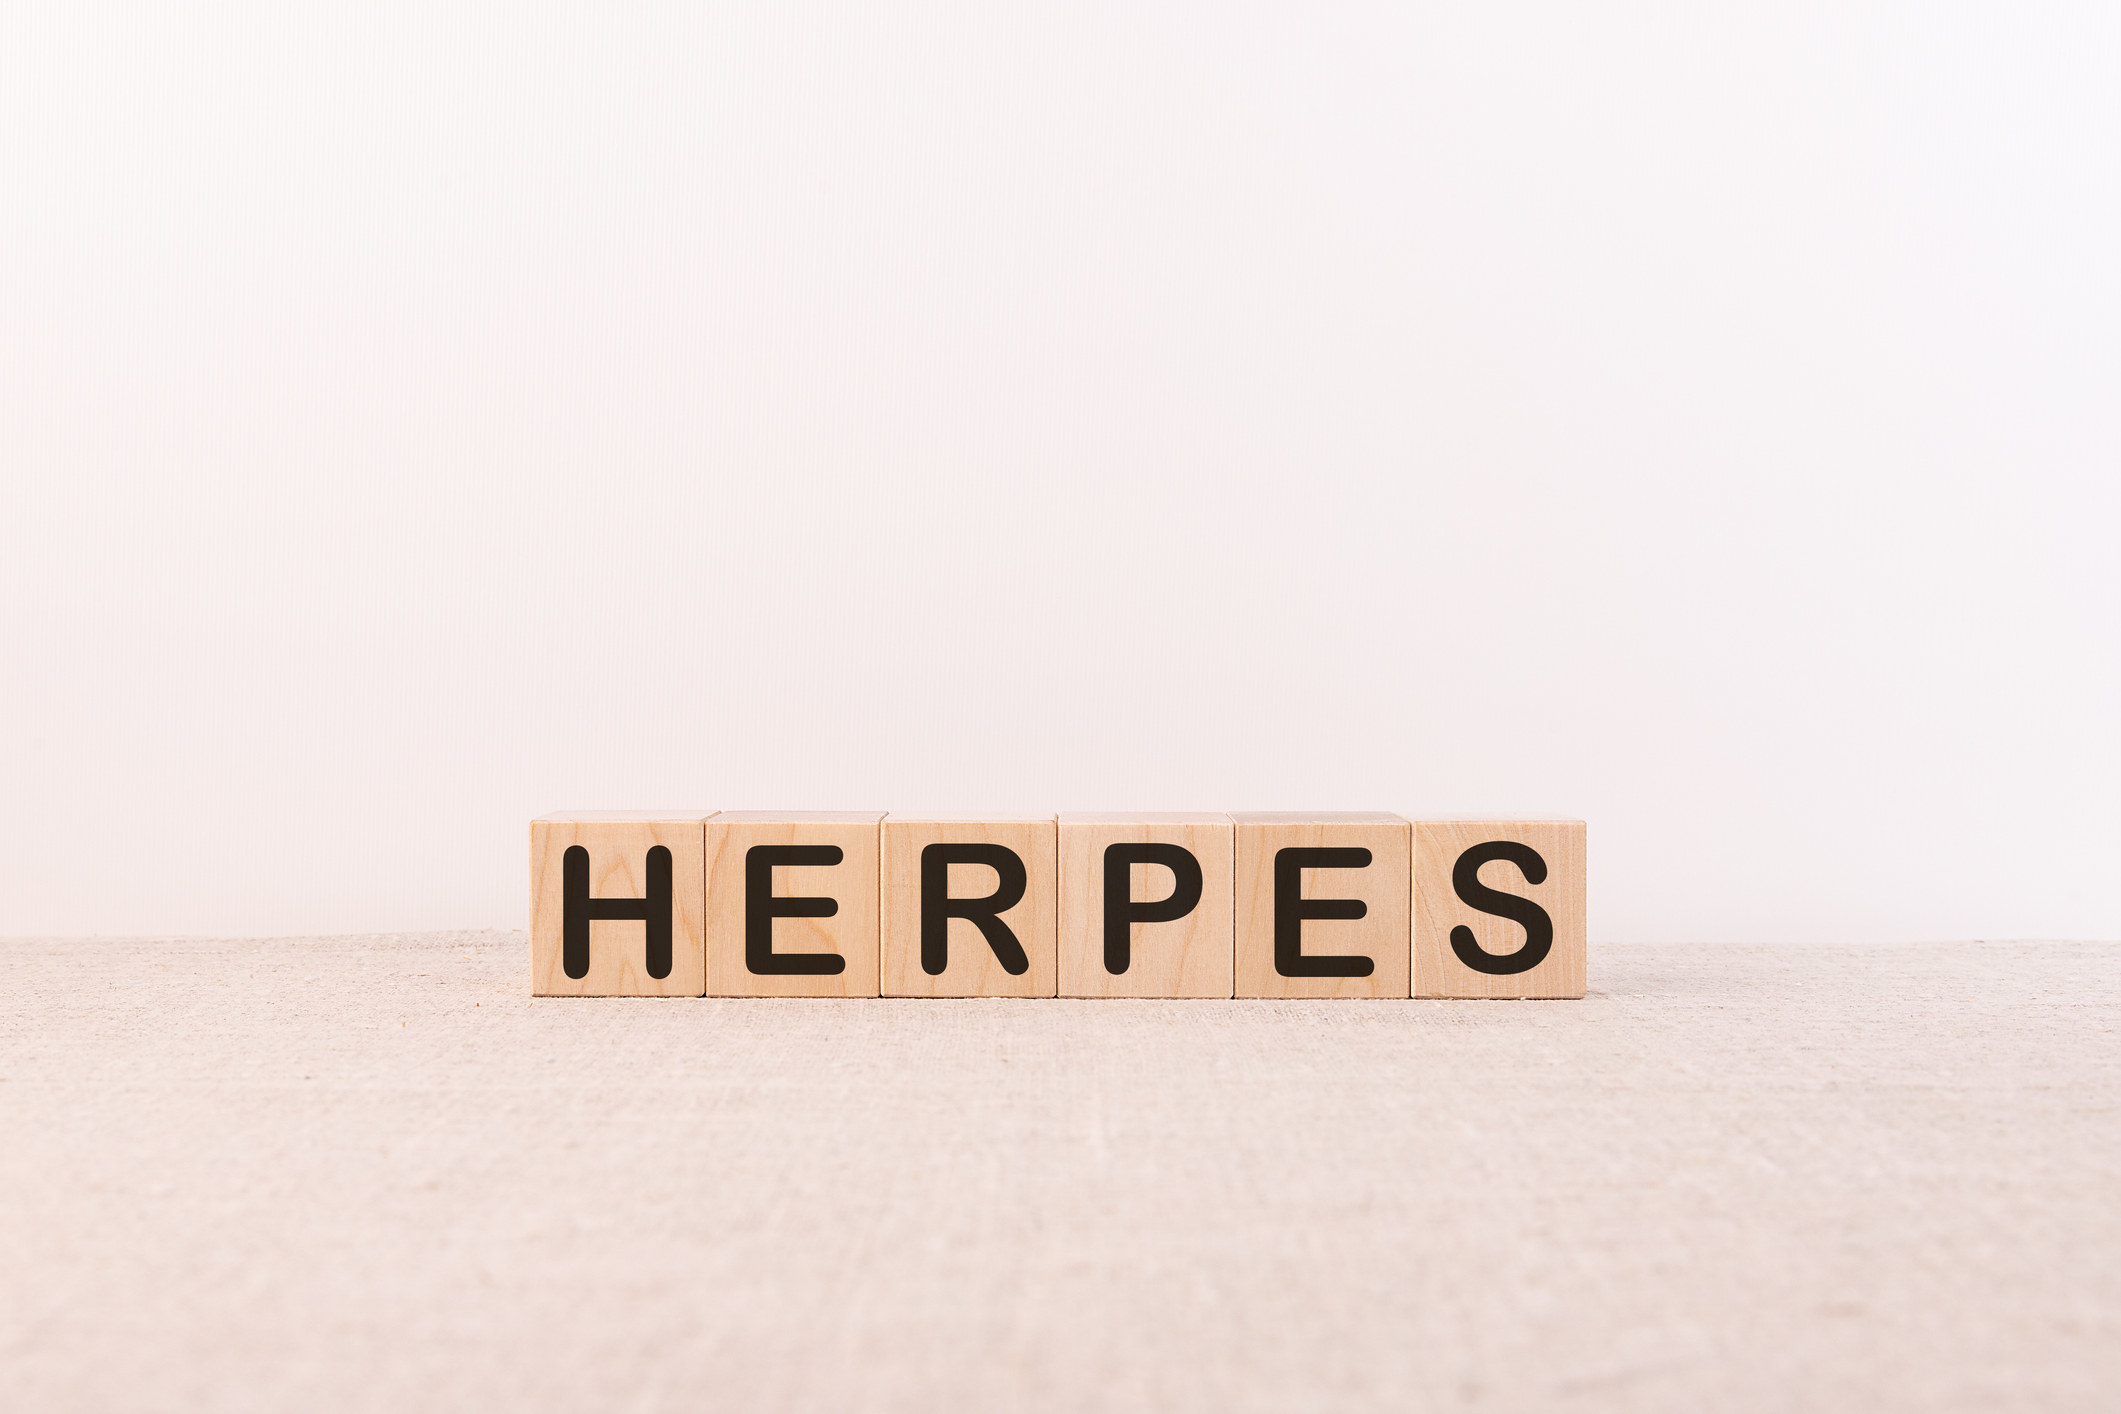 """Block letters spelling out """"Herpes"""""""